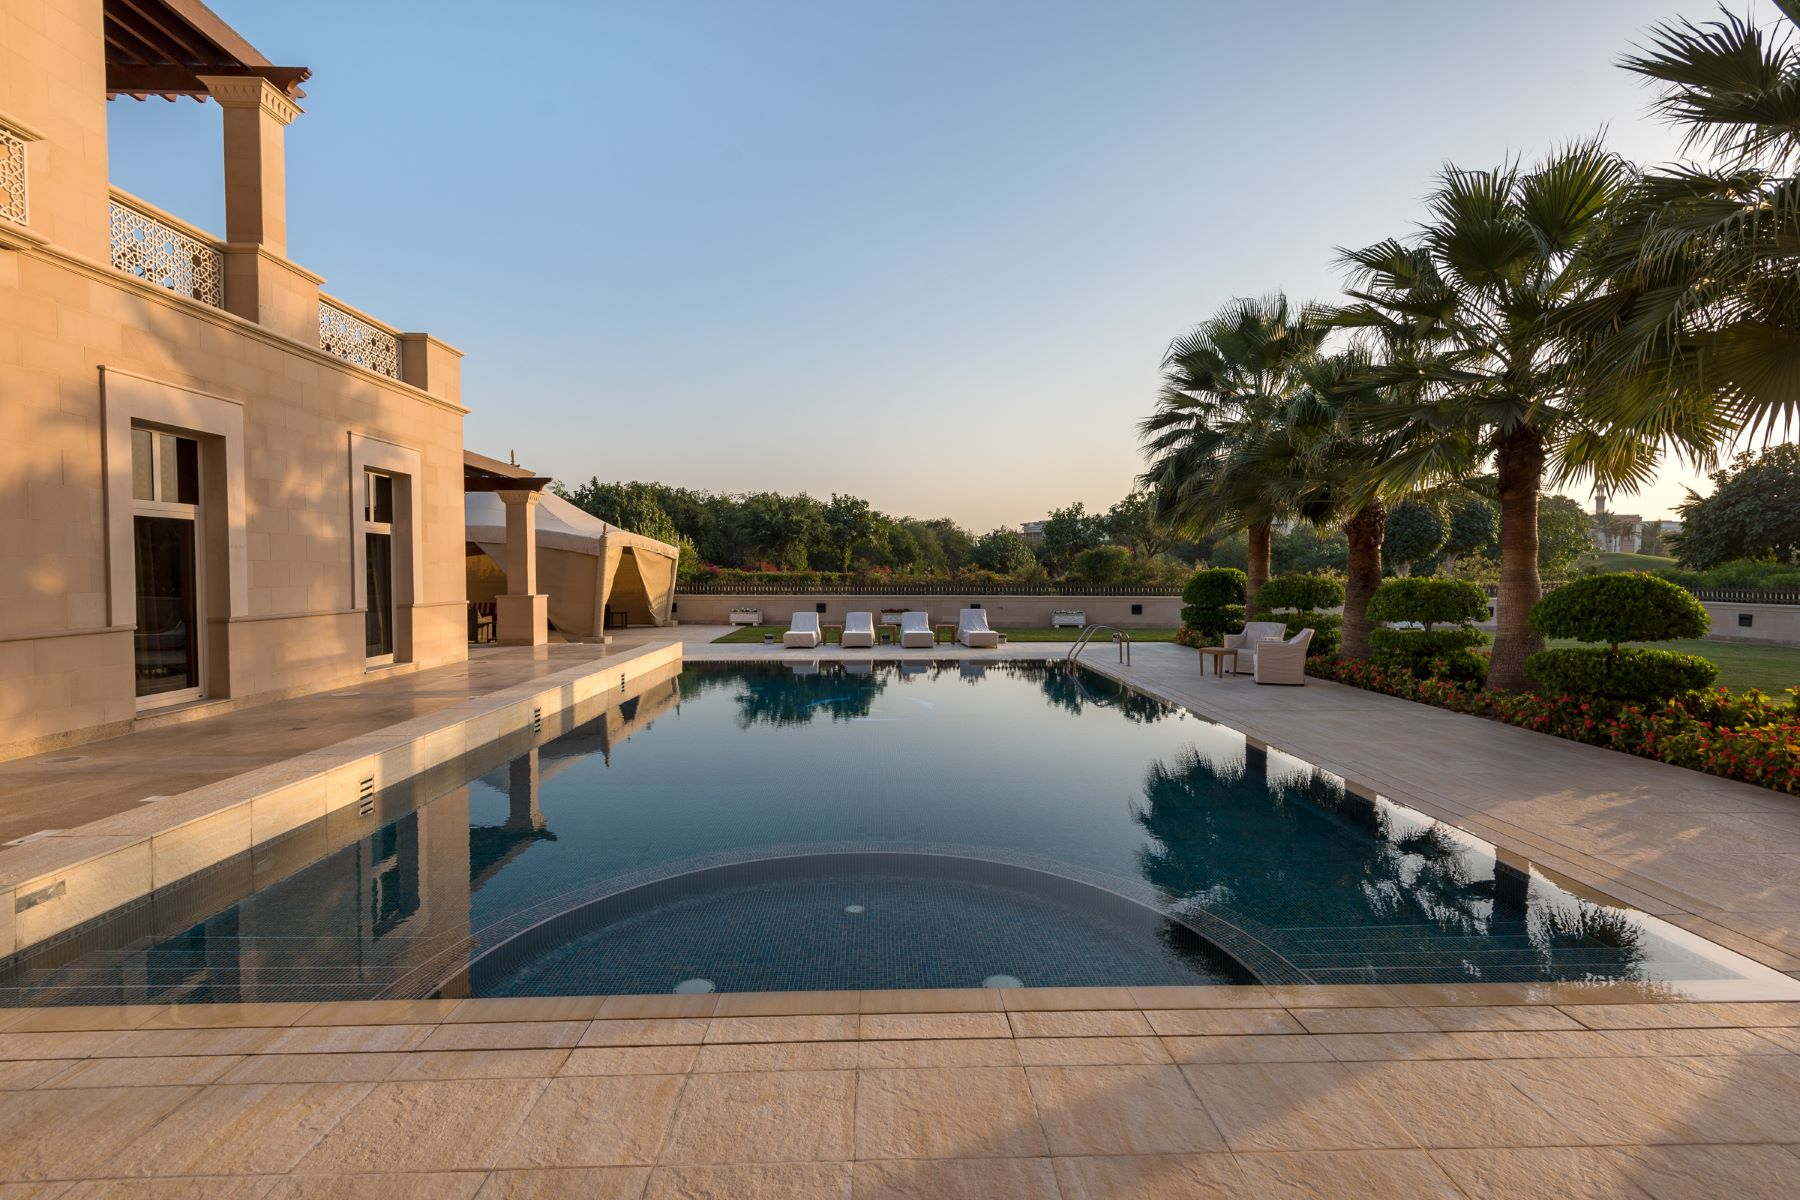 Additional photo for property listing at High Quality Luxury Villa With Lake View. Dubai, Dubai United Arab Emirates